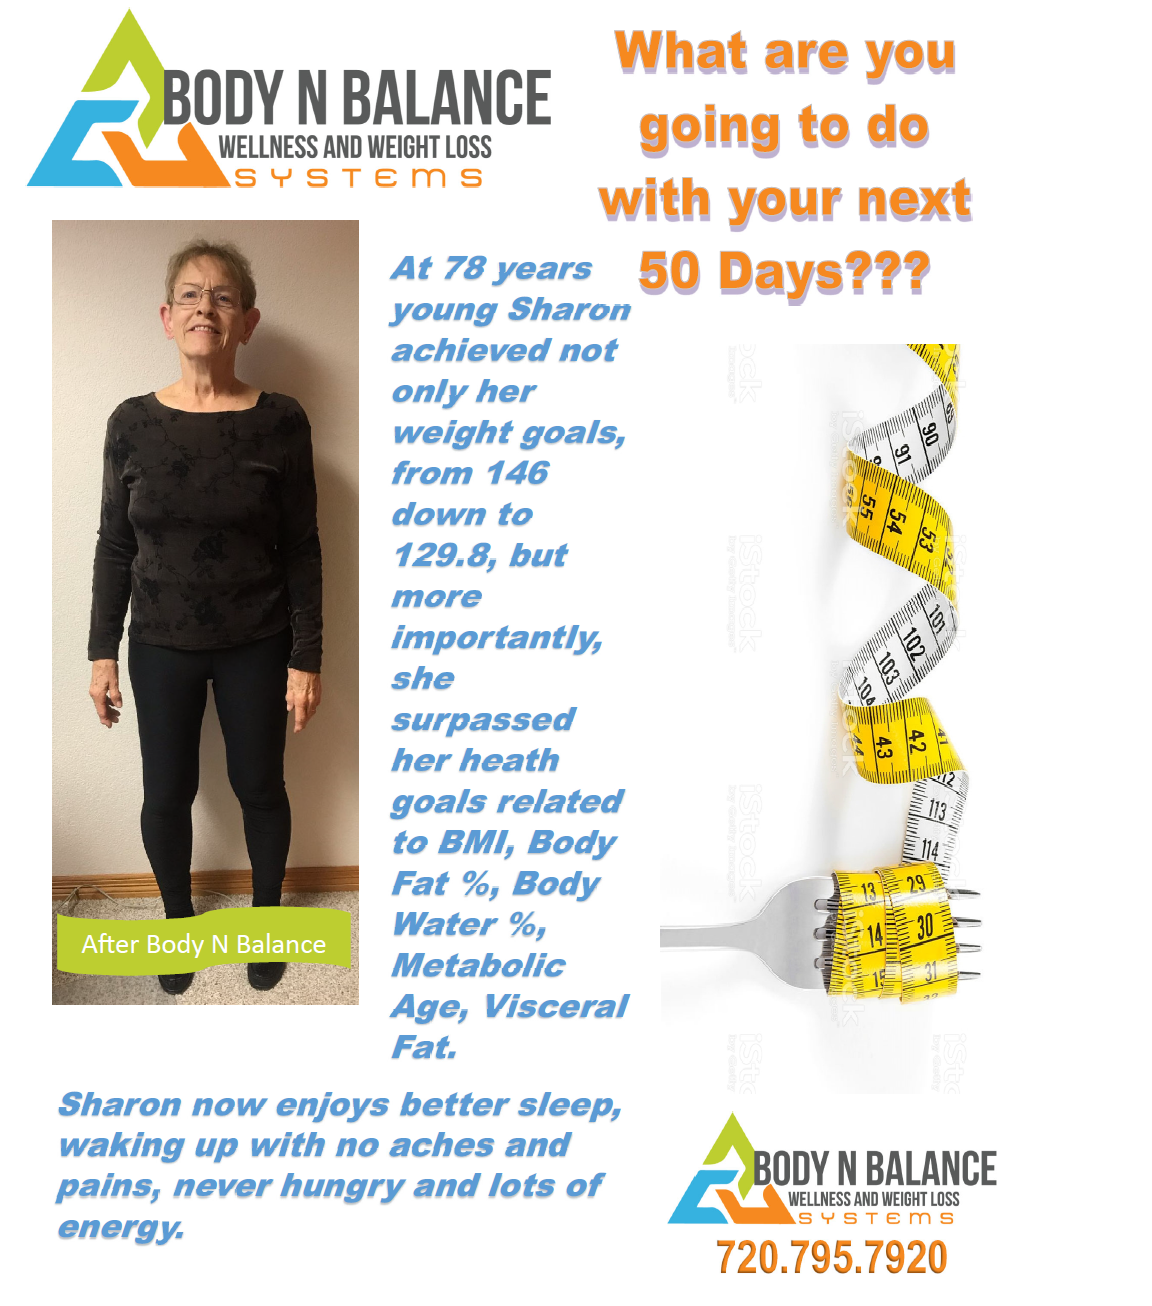 Sharon is Feeling Great At 78!!!!! Check out her story!